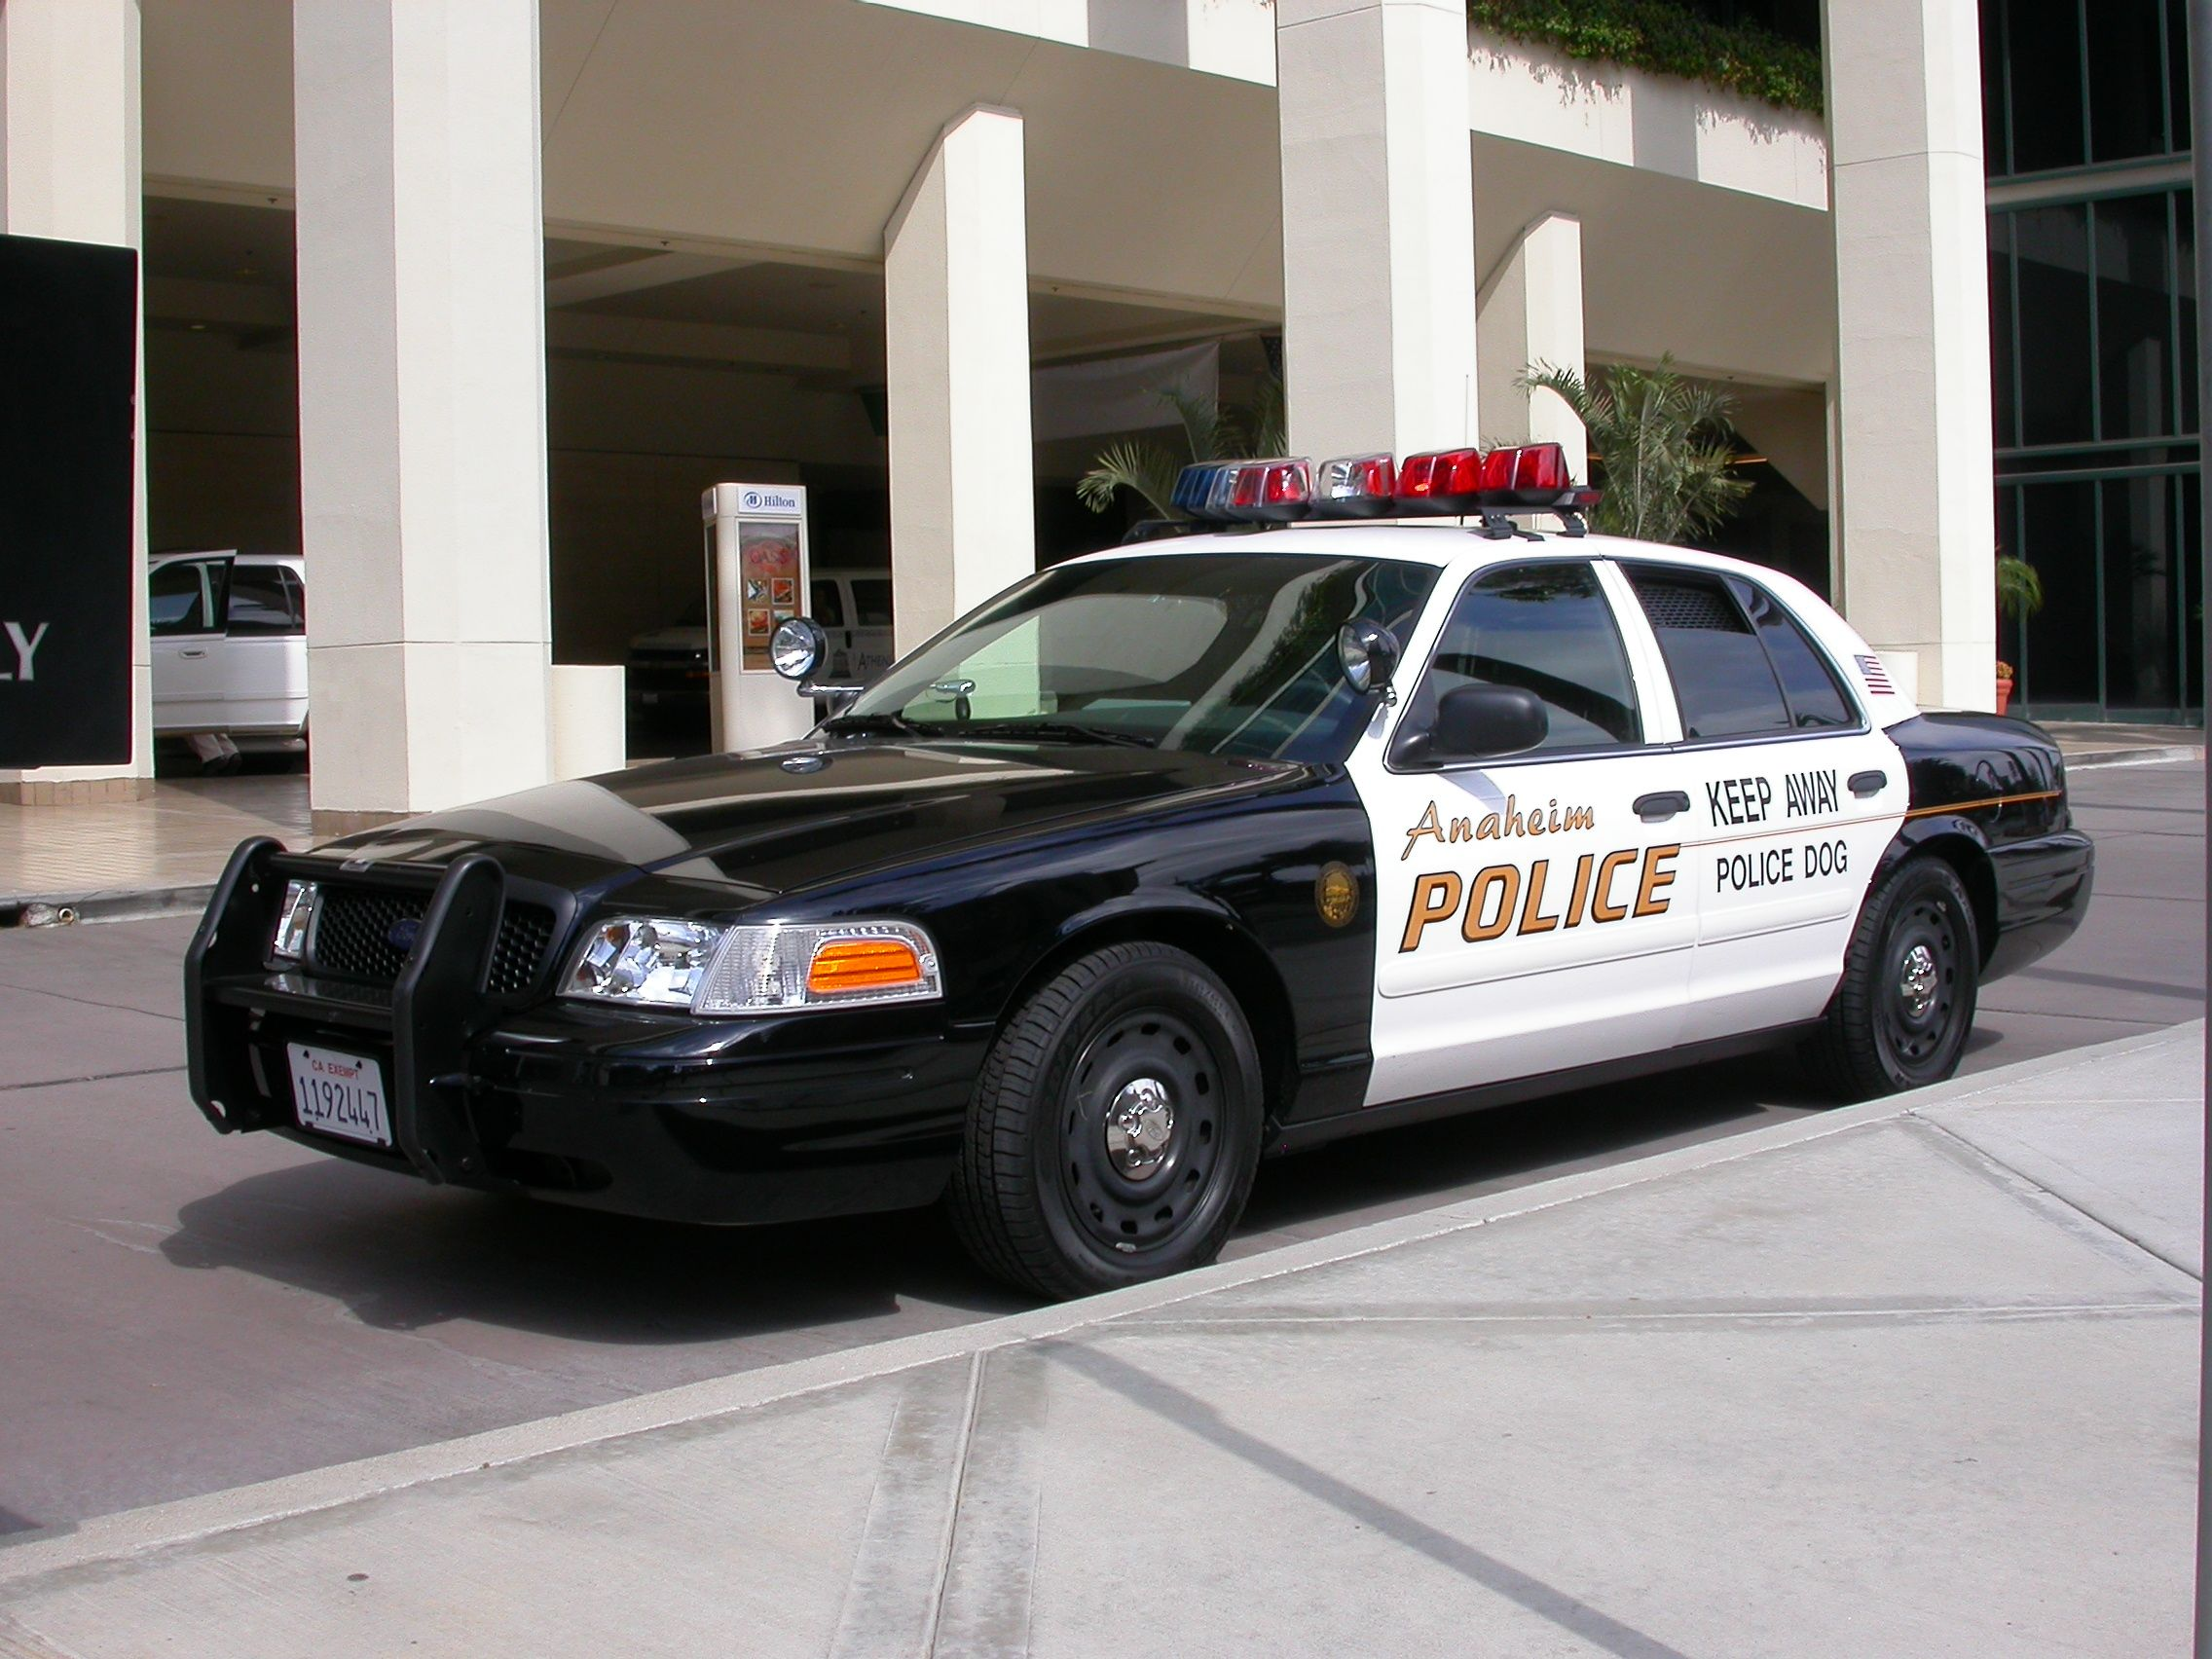 Los angeles police car ford crown victoria police interceptor wikipedia motorized road vehicles in the usa and canada including motorcycles